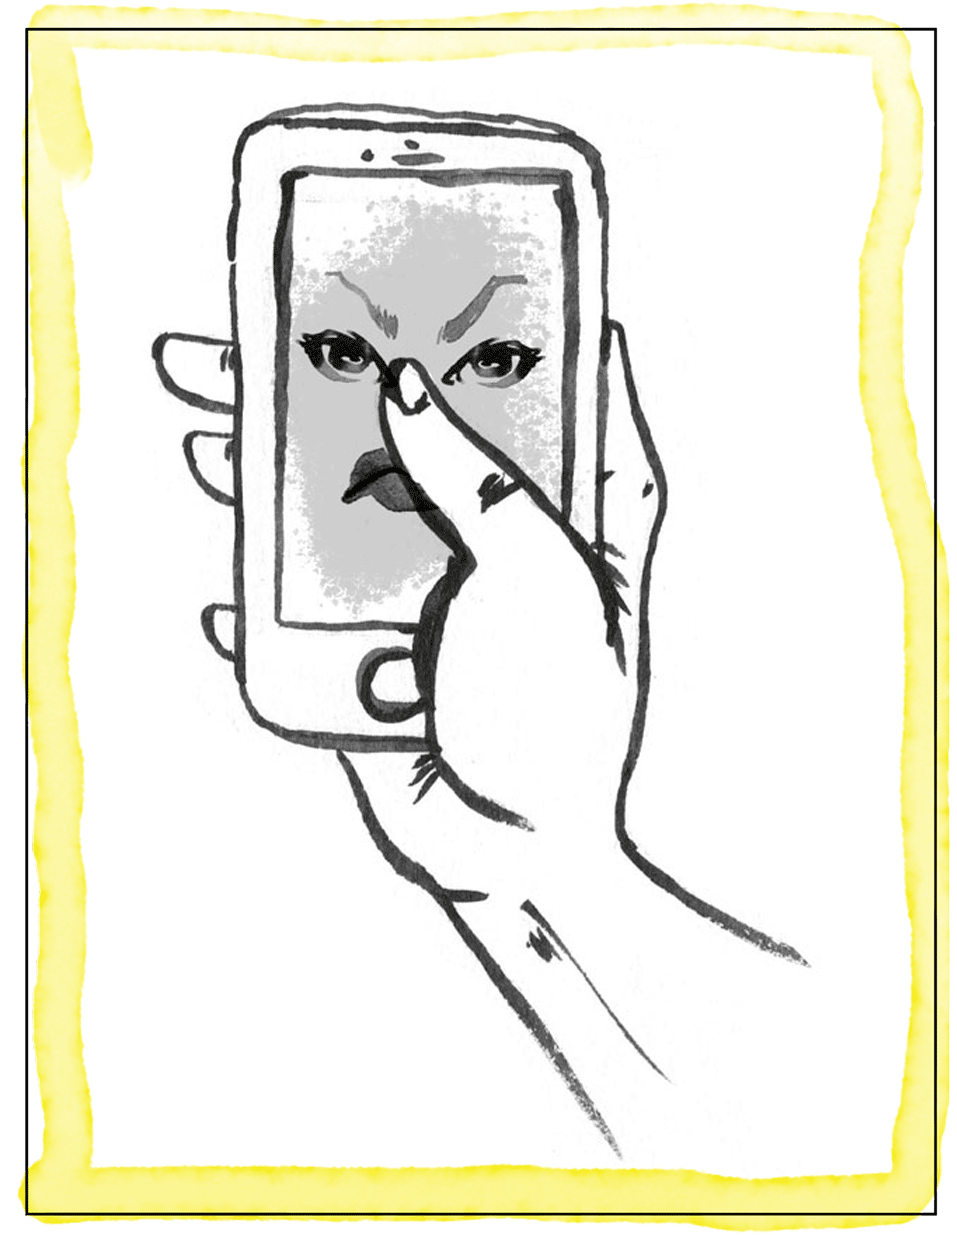 An illustration of a hand filming an incident of harassment with a smartphone.